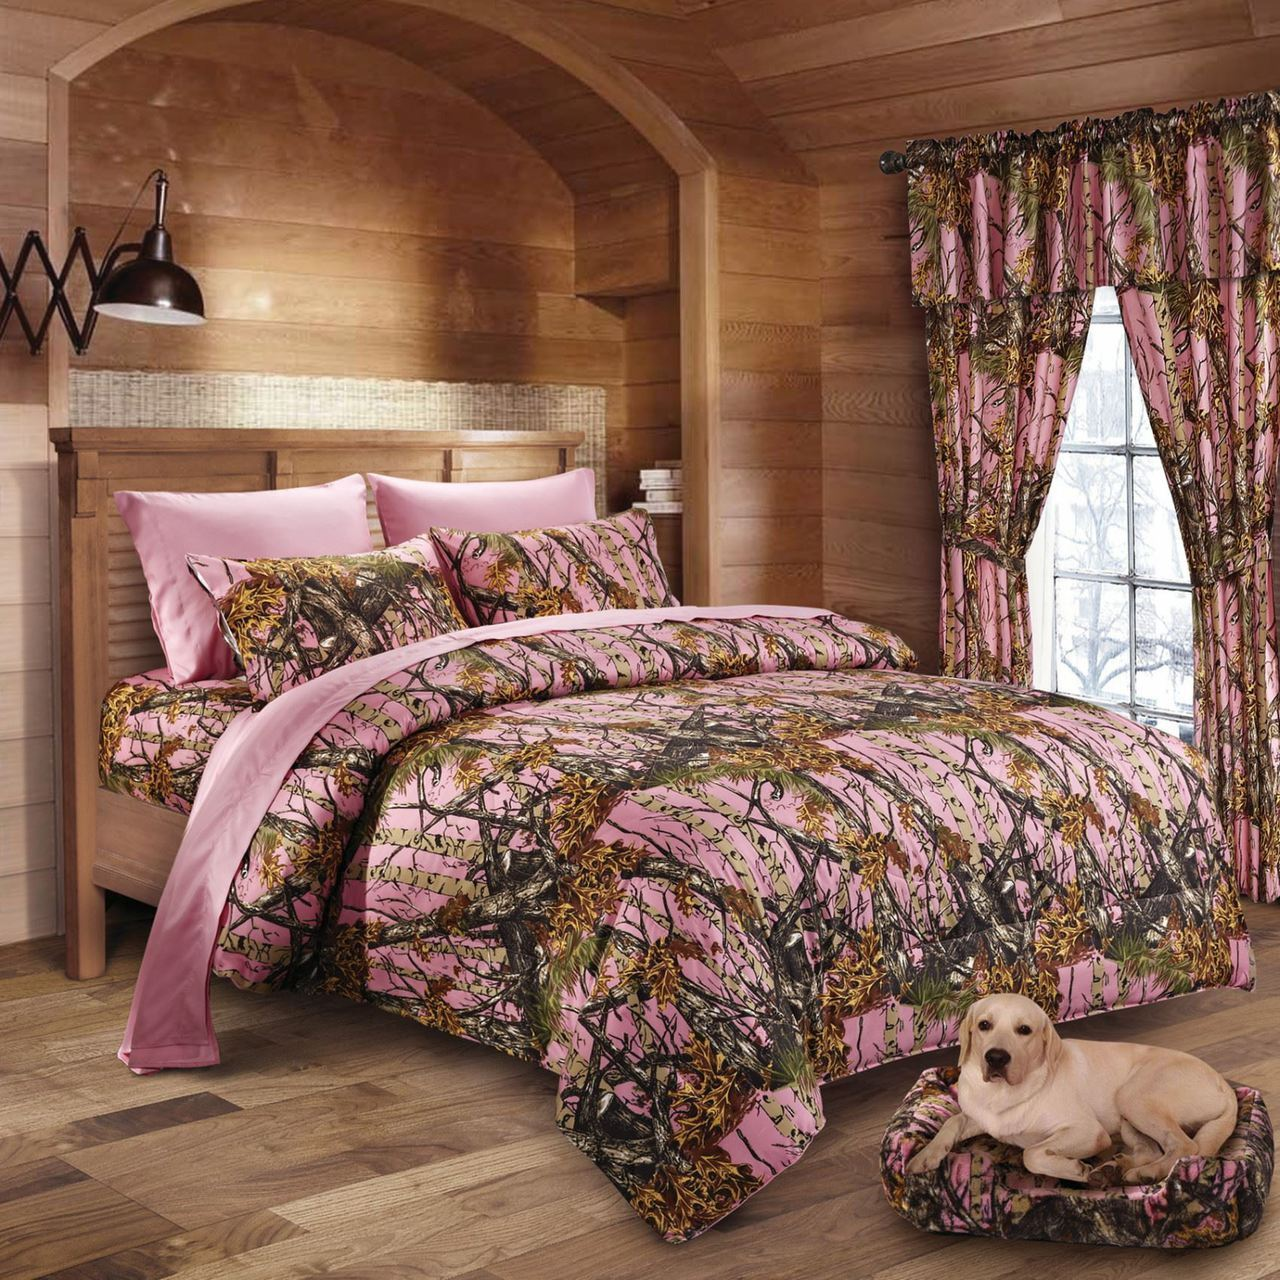 22 pc Pink Woods Camo Queen size comforter sheets pillowcases and curtains set